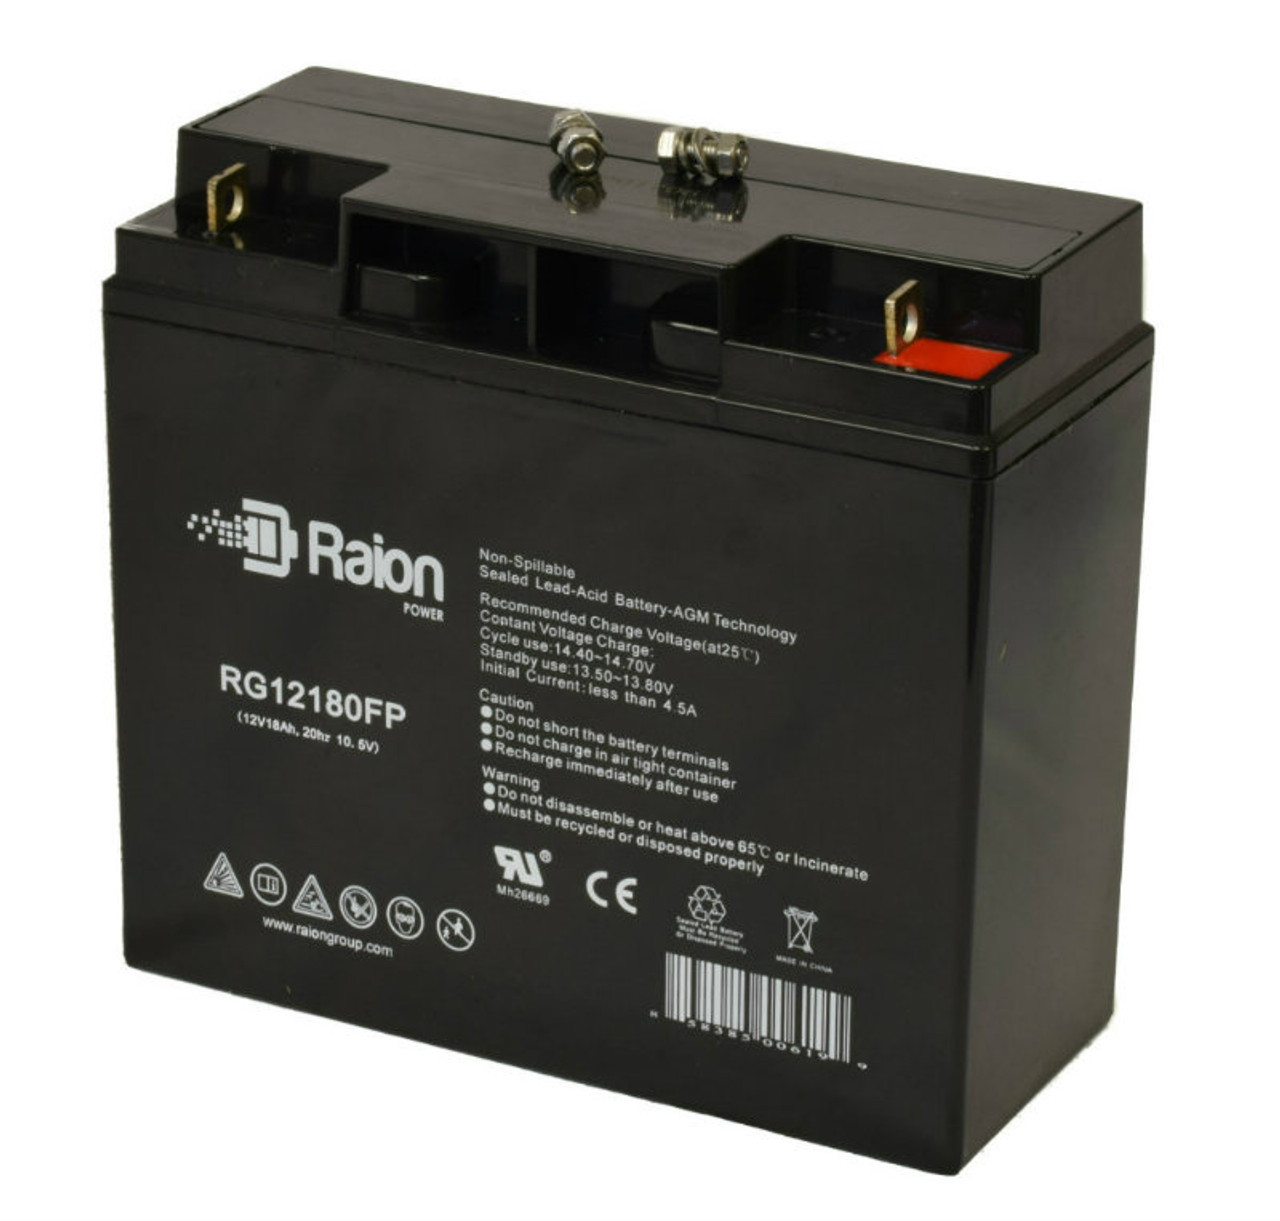 Raion Power RG12180FP Replacement Battery For Amigo Fiesta III Mobility Scooter